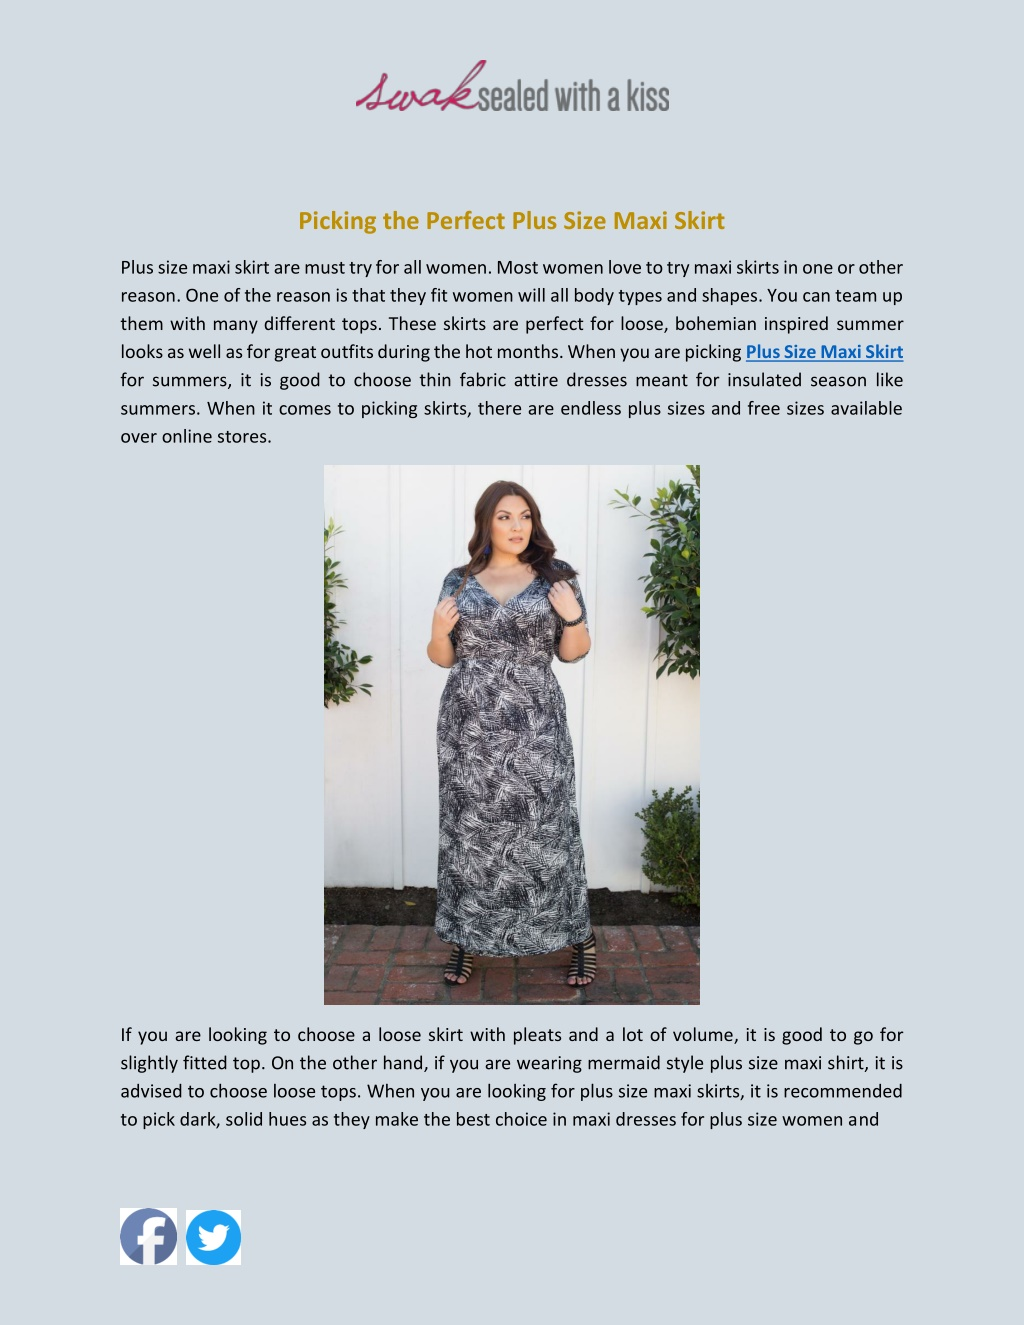 Picking the Perfect Plus Size Maxi Skirt